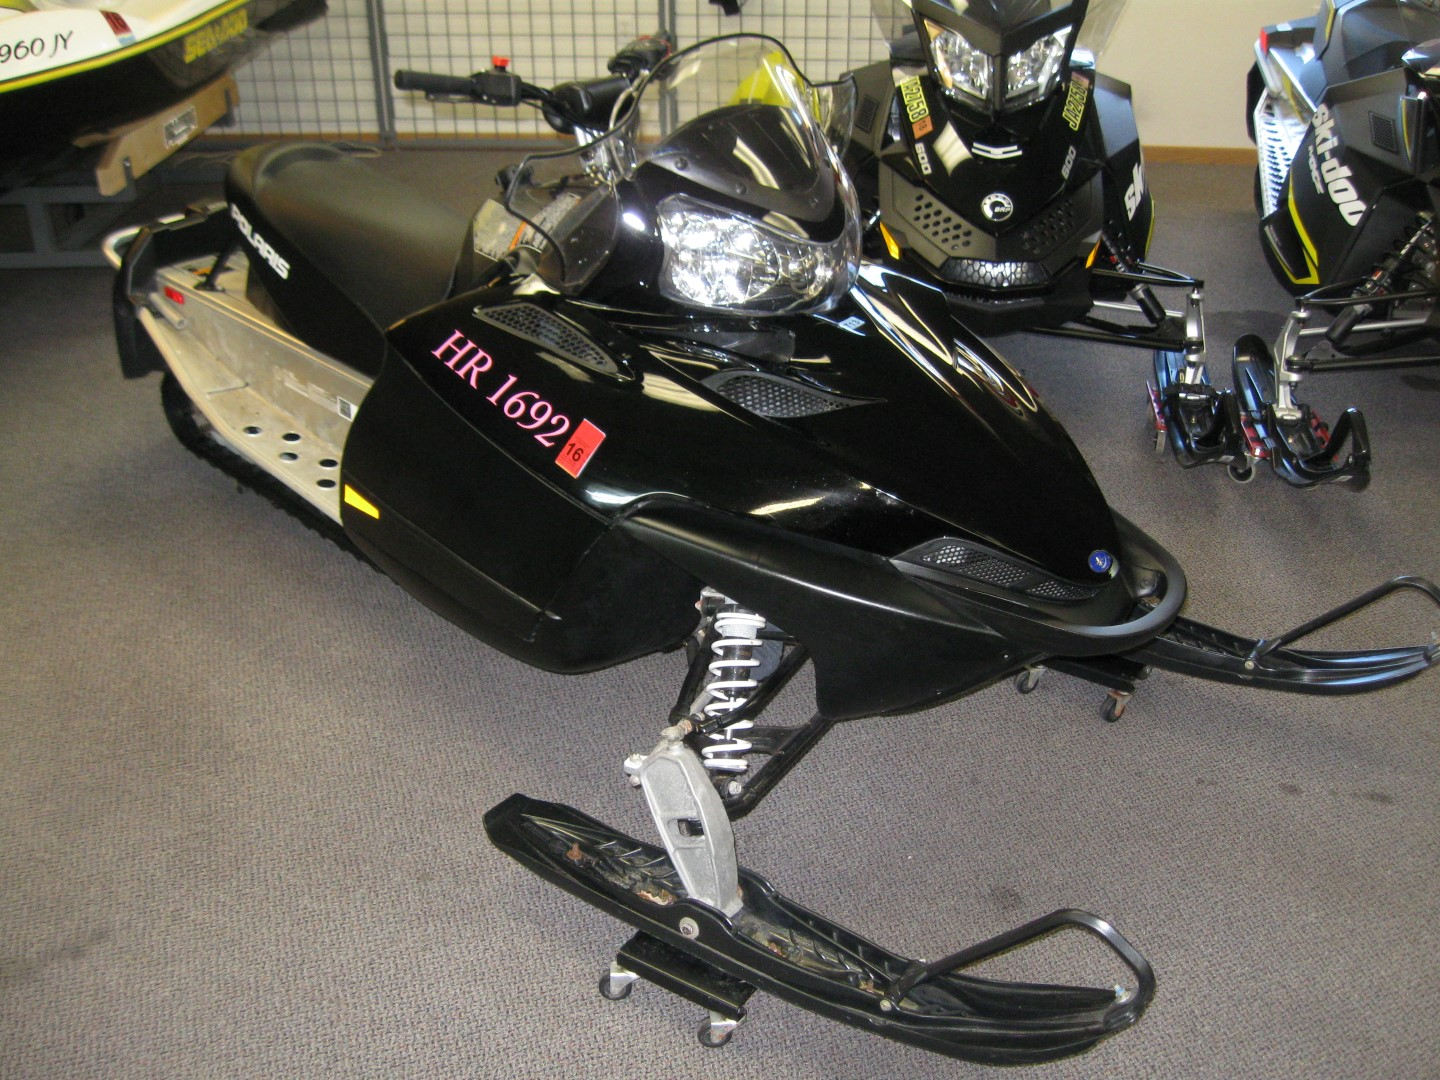 2008 Polaris IQ Shift 600 for sale black minnetonka mn seaberg motorsports crosslake mn front quarter view skis